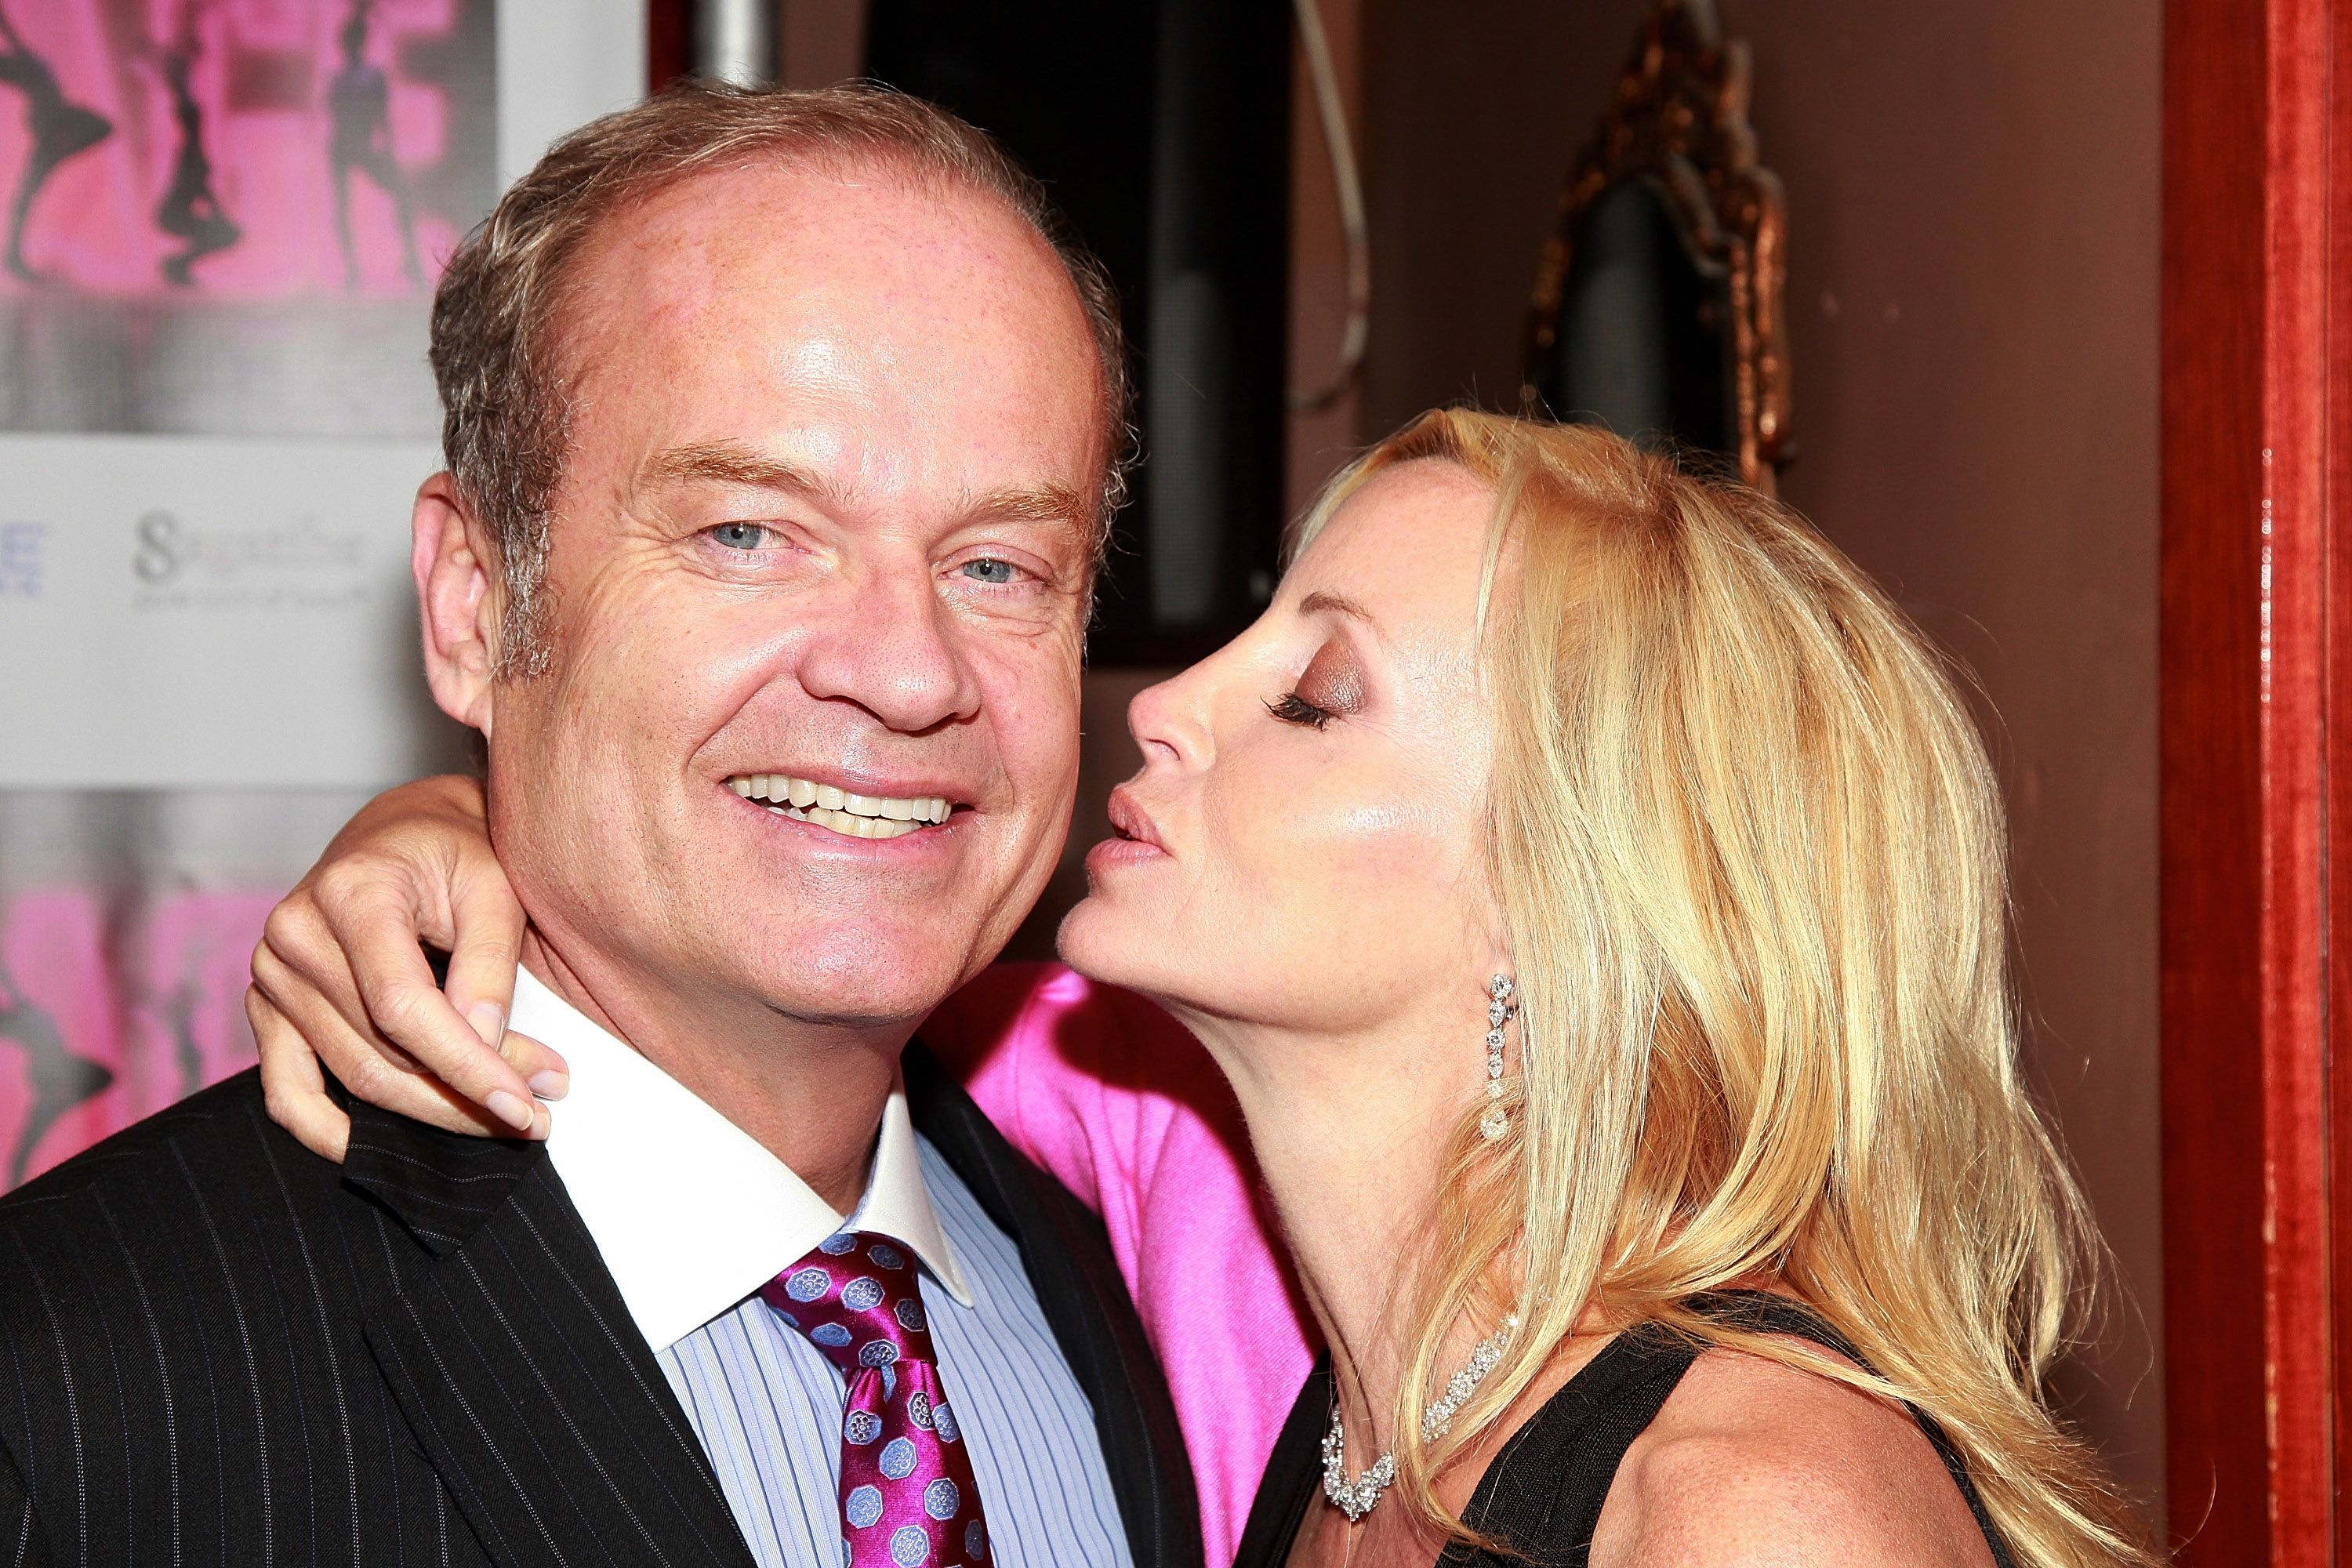 """Kelsey Grammer and Camille Donatacci Grammer at the after party for the opening of """"La Cage Aux Folles"""" on Broadway in 2010 in New York City 